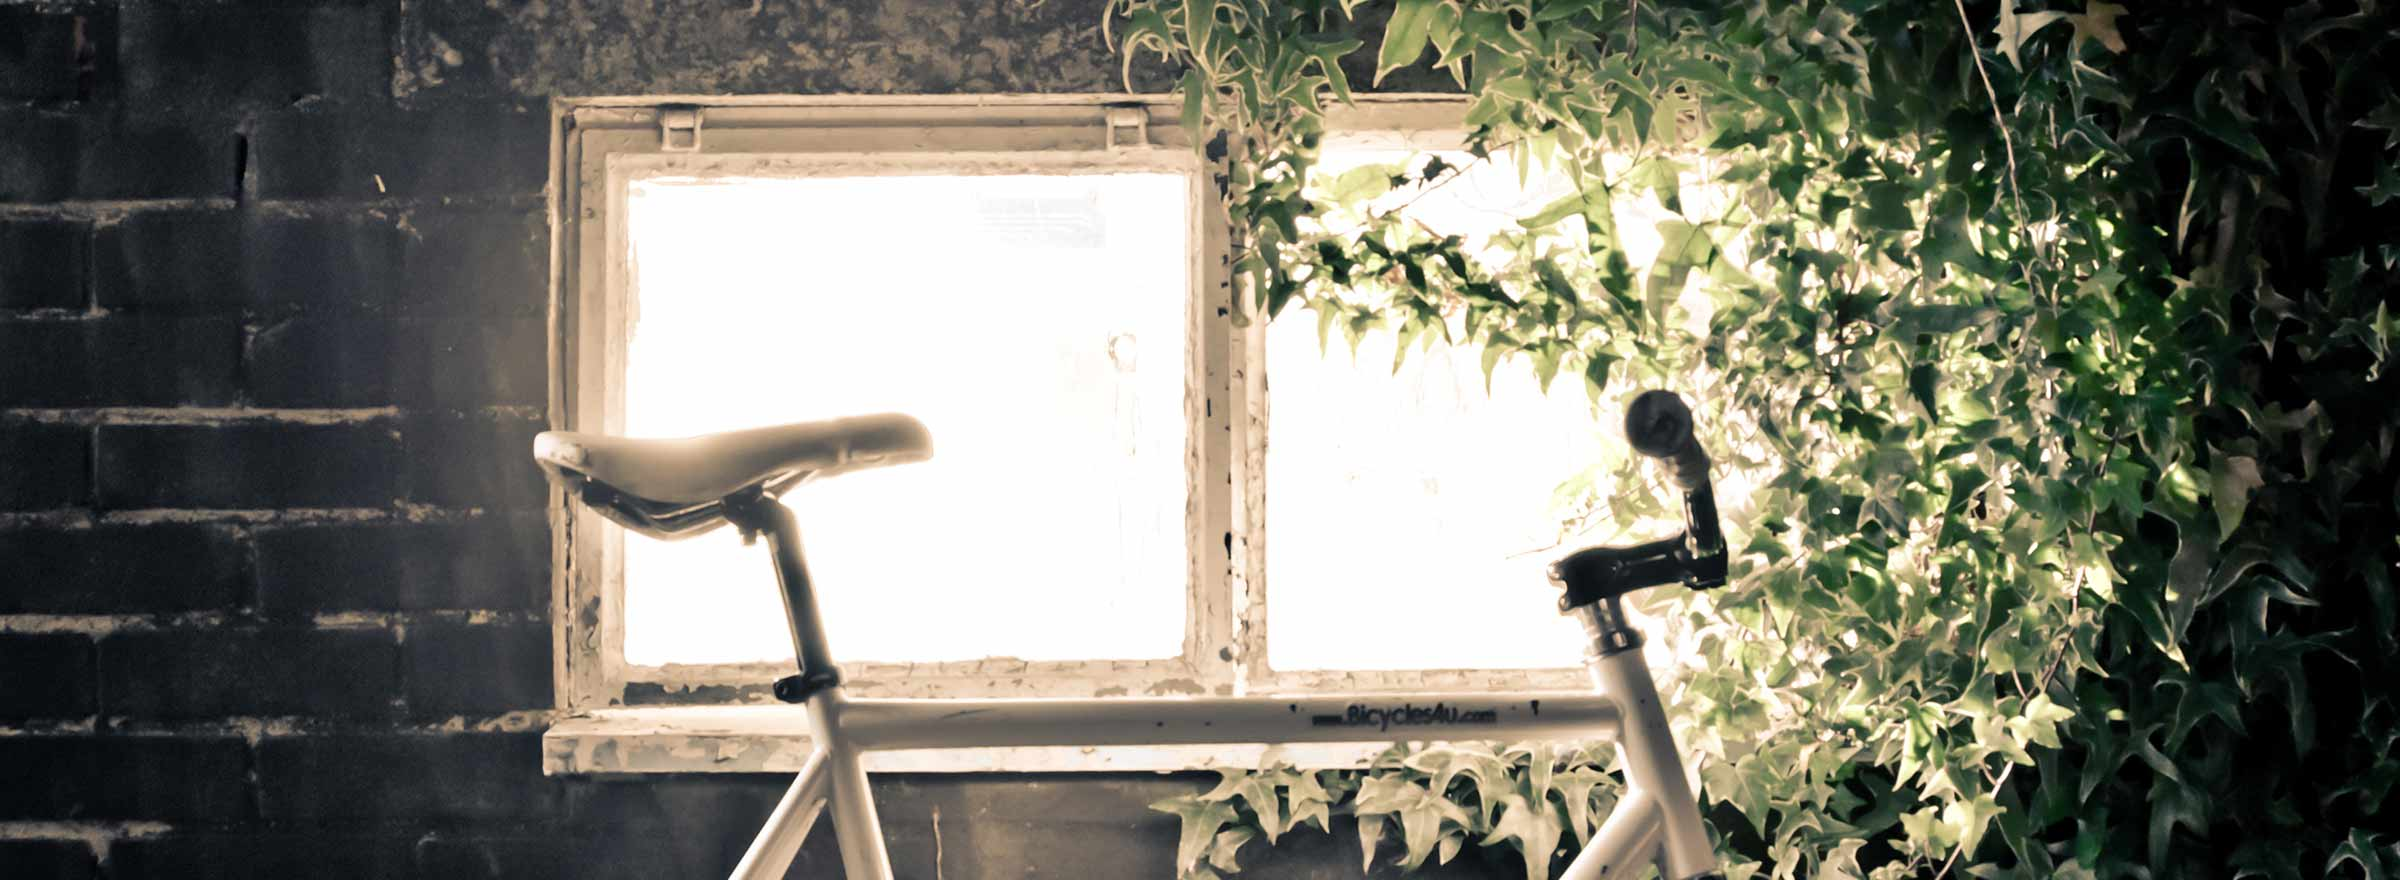 a used bike in front of a brightly light window, representing the good work B!KE is able to do in part because of Intuit QuickBooks